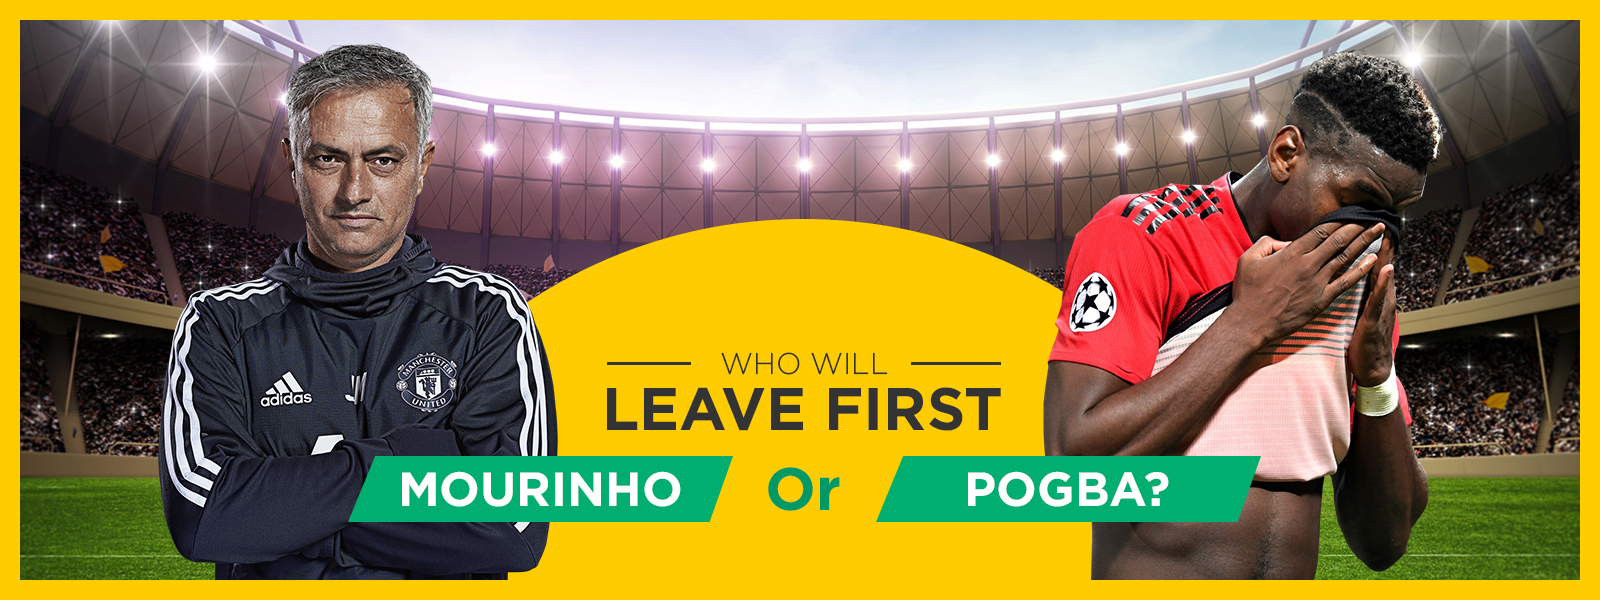 Who Will Leave Manchester United First: Mourinho Or Pogba?